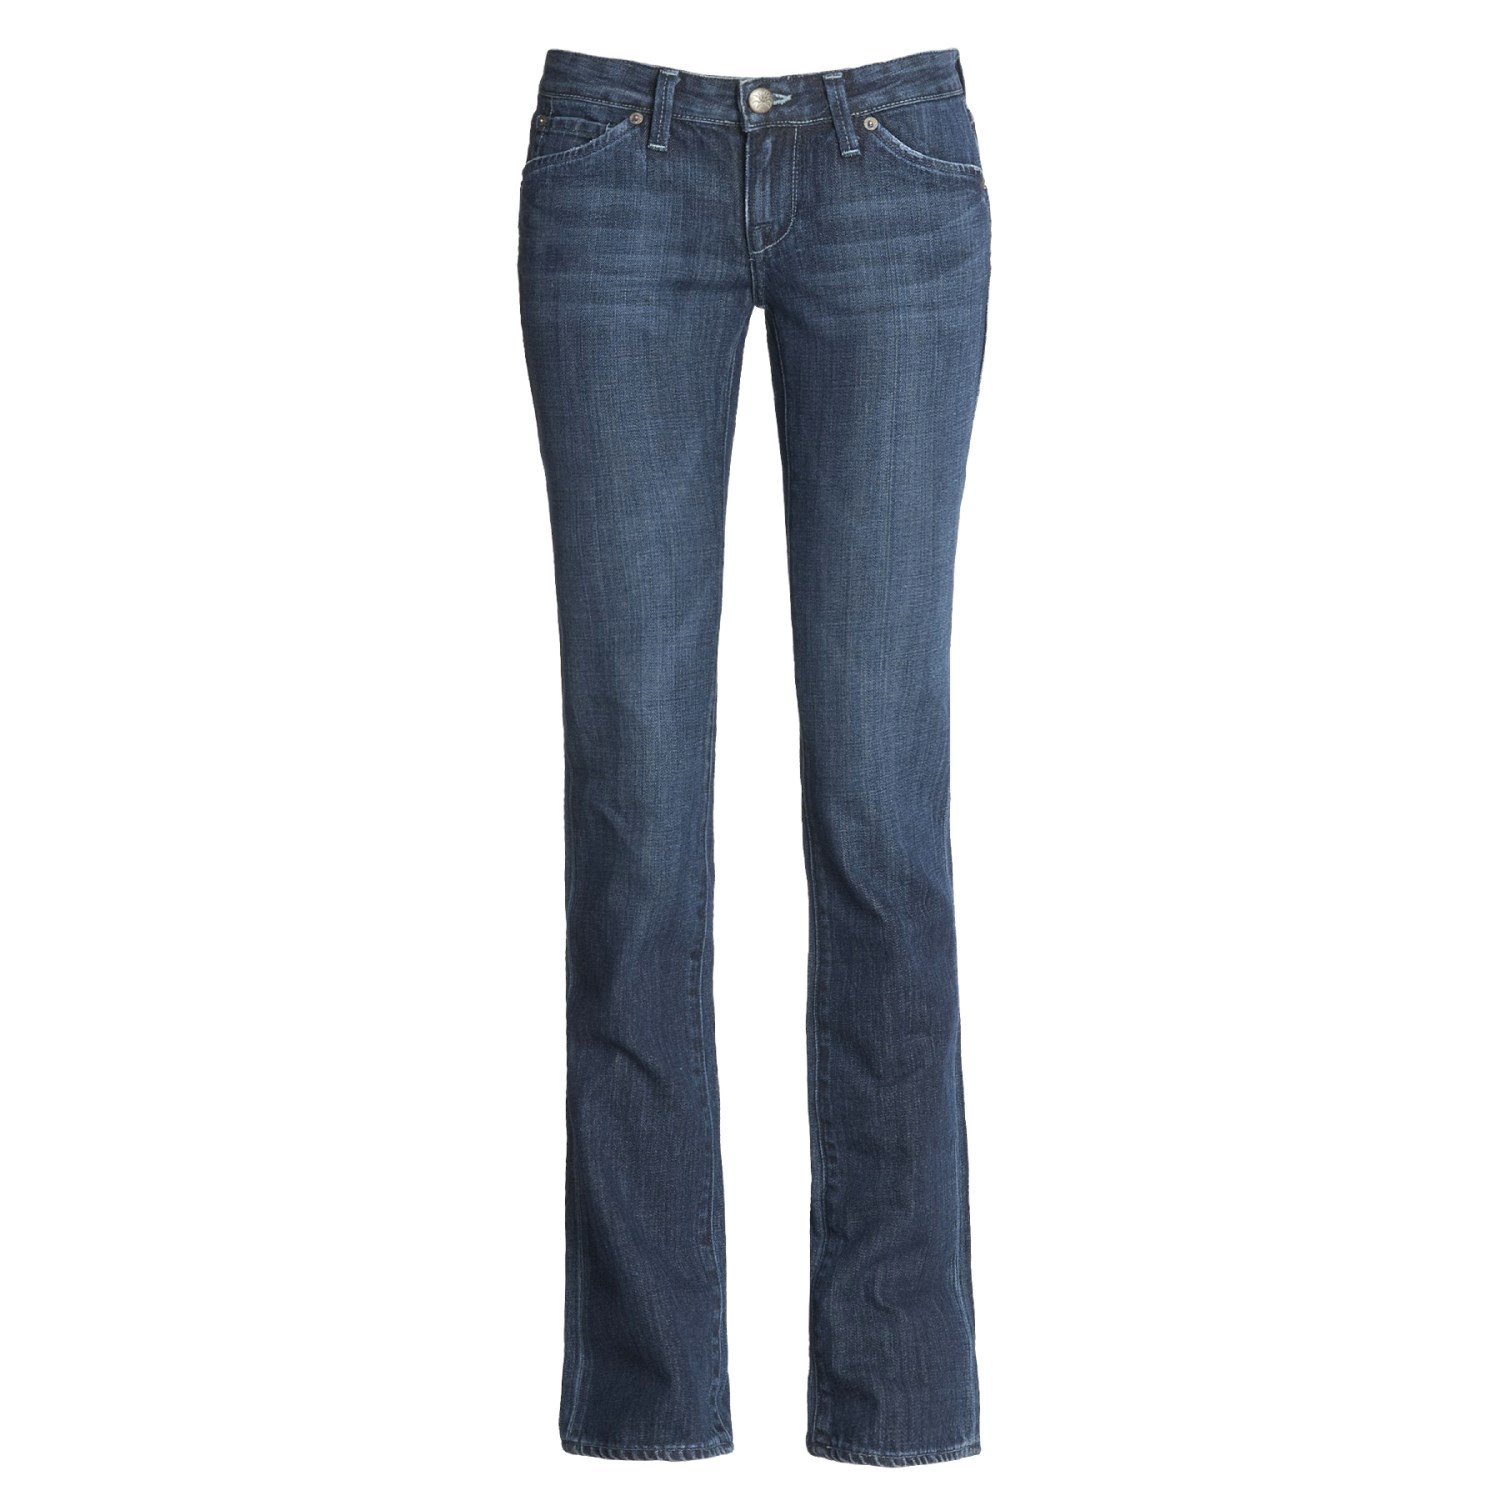 agave nectar paraiso denim jeans for women